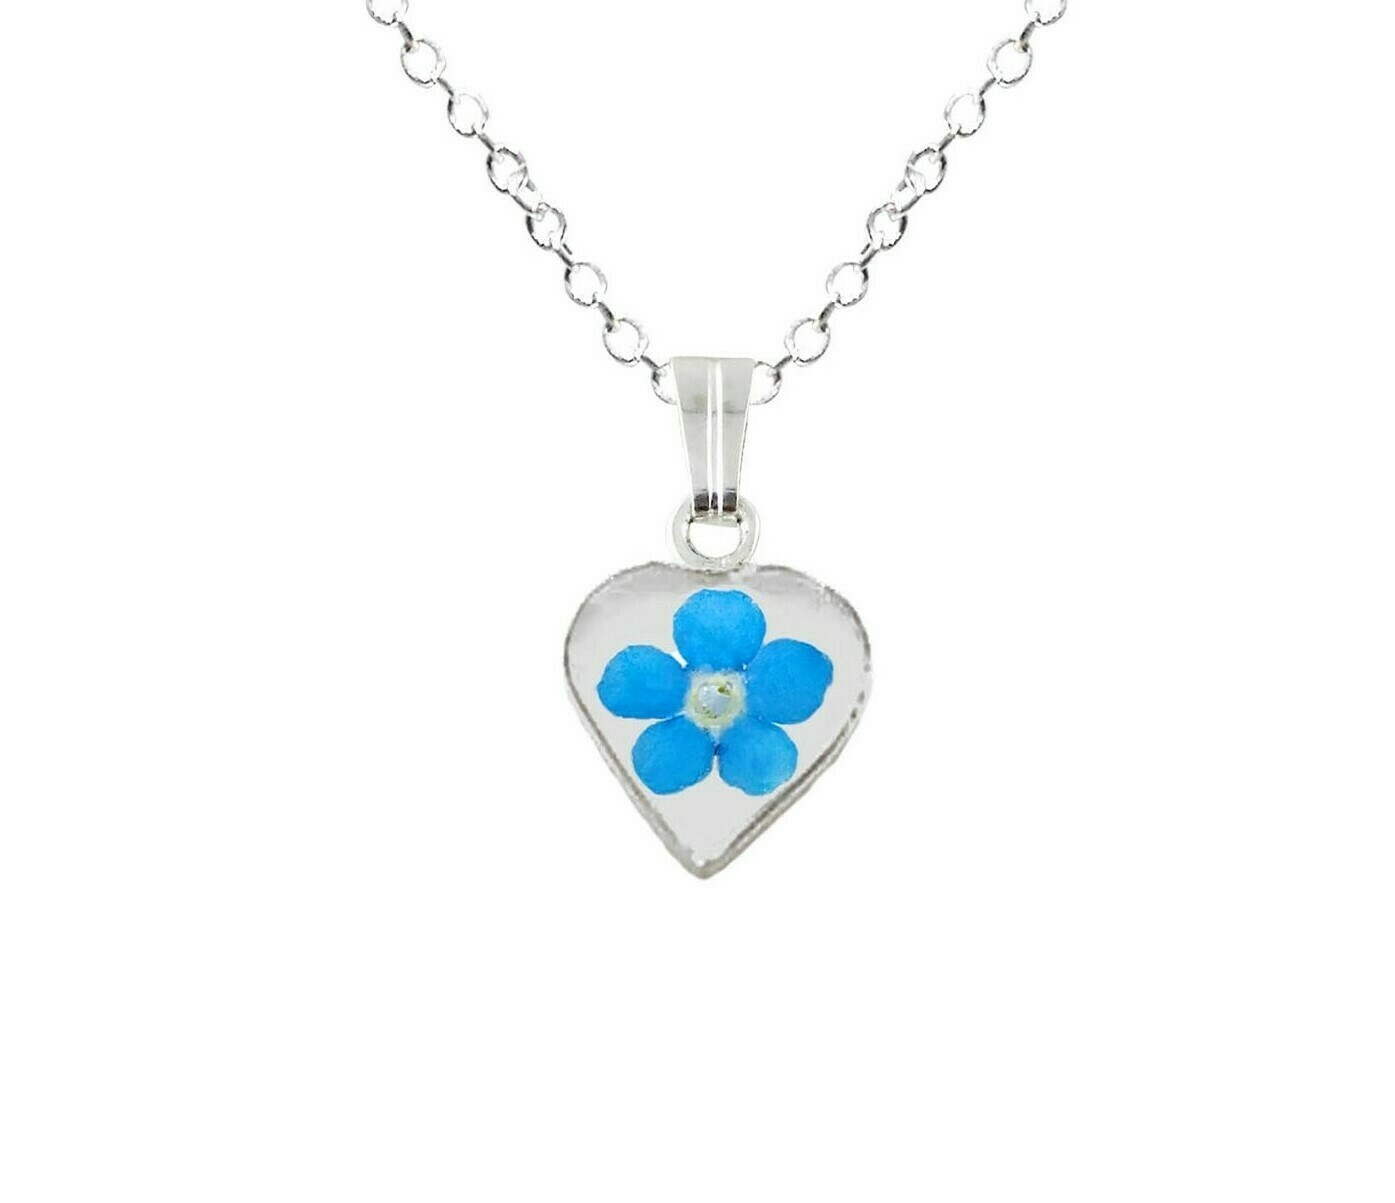 Forget-Me-Not Necklace, Small Heart, White Background